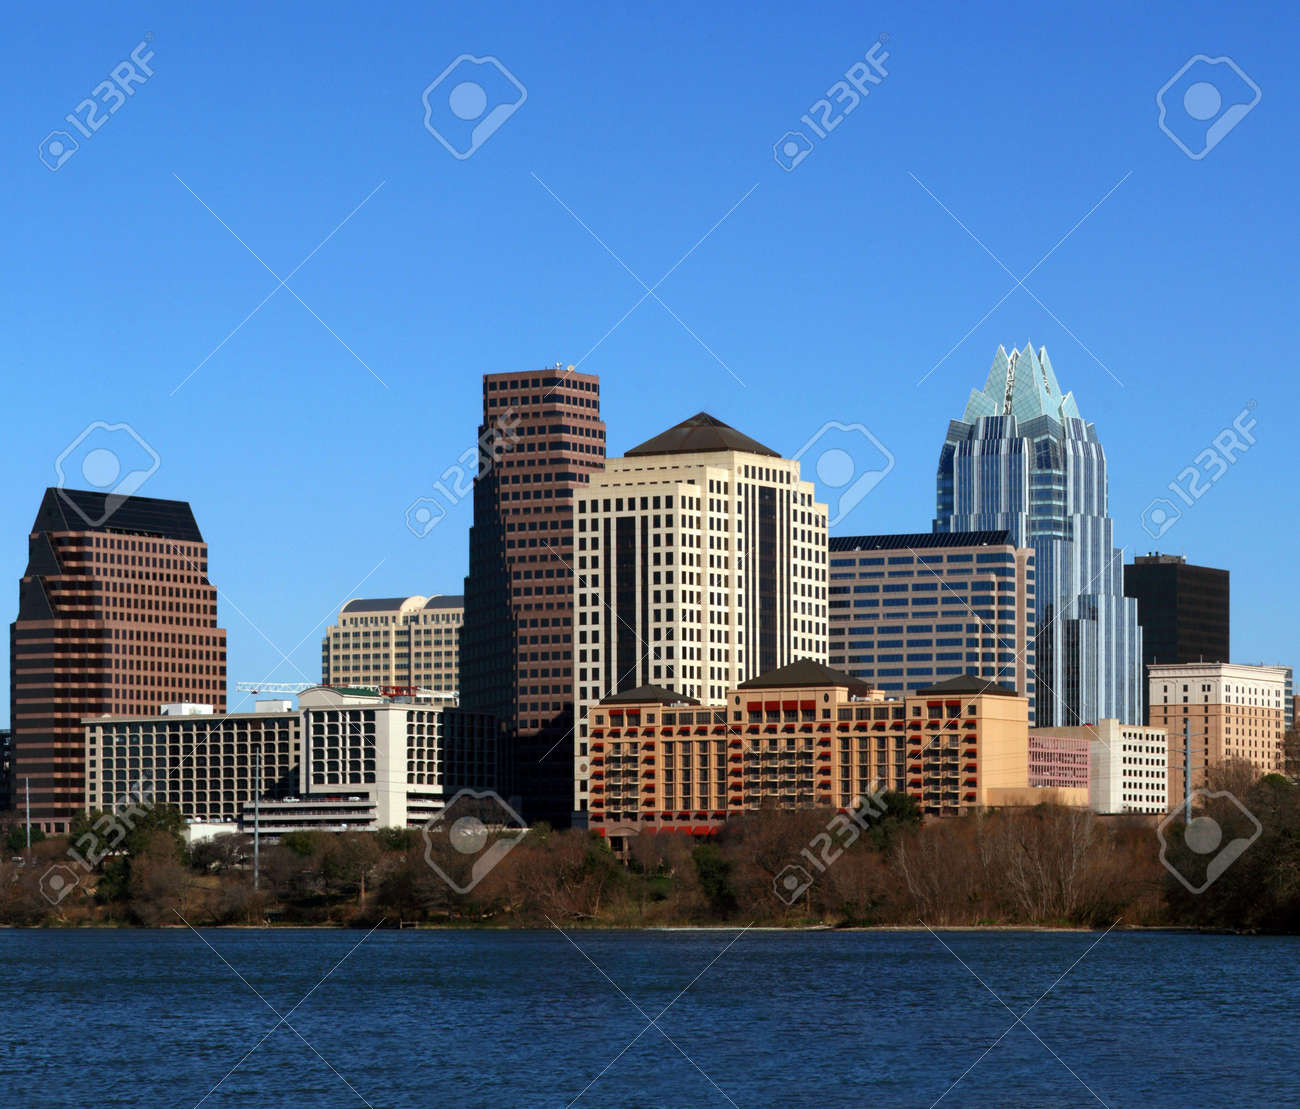 The downtown austin texas skyline on a clear sunny day. Stock Photo - 3003898